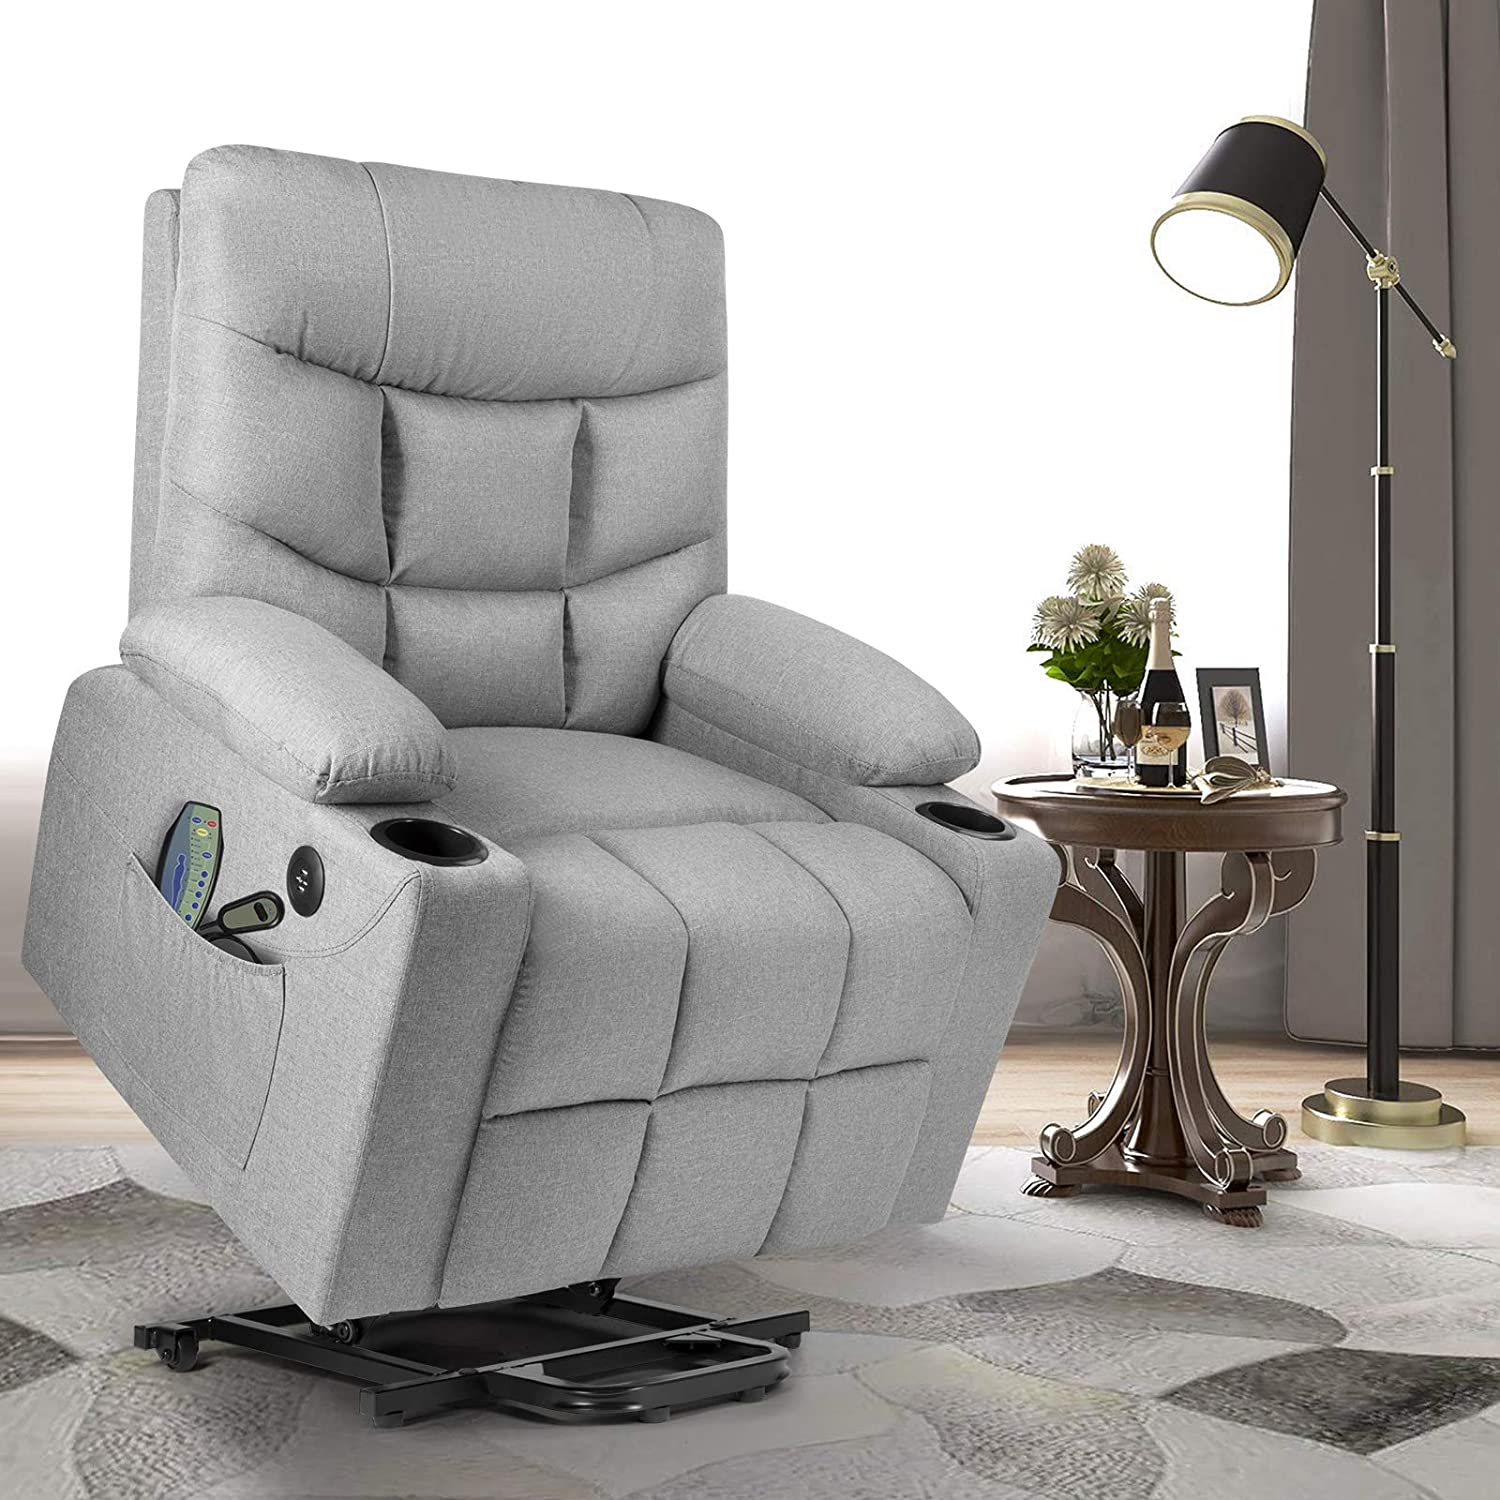 Awesome Best Chair For Back Pain Living Room Uk